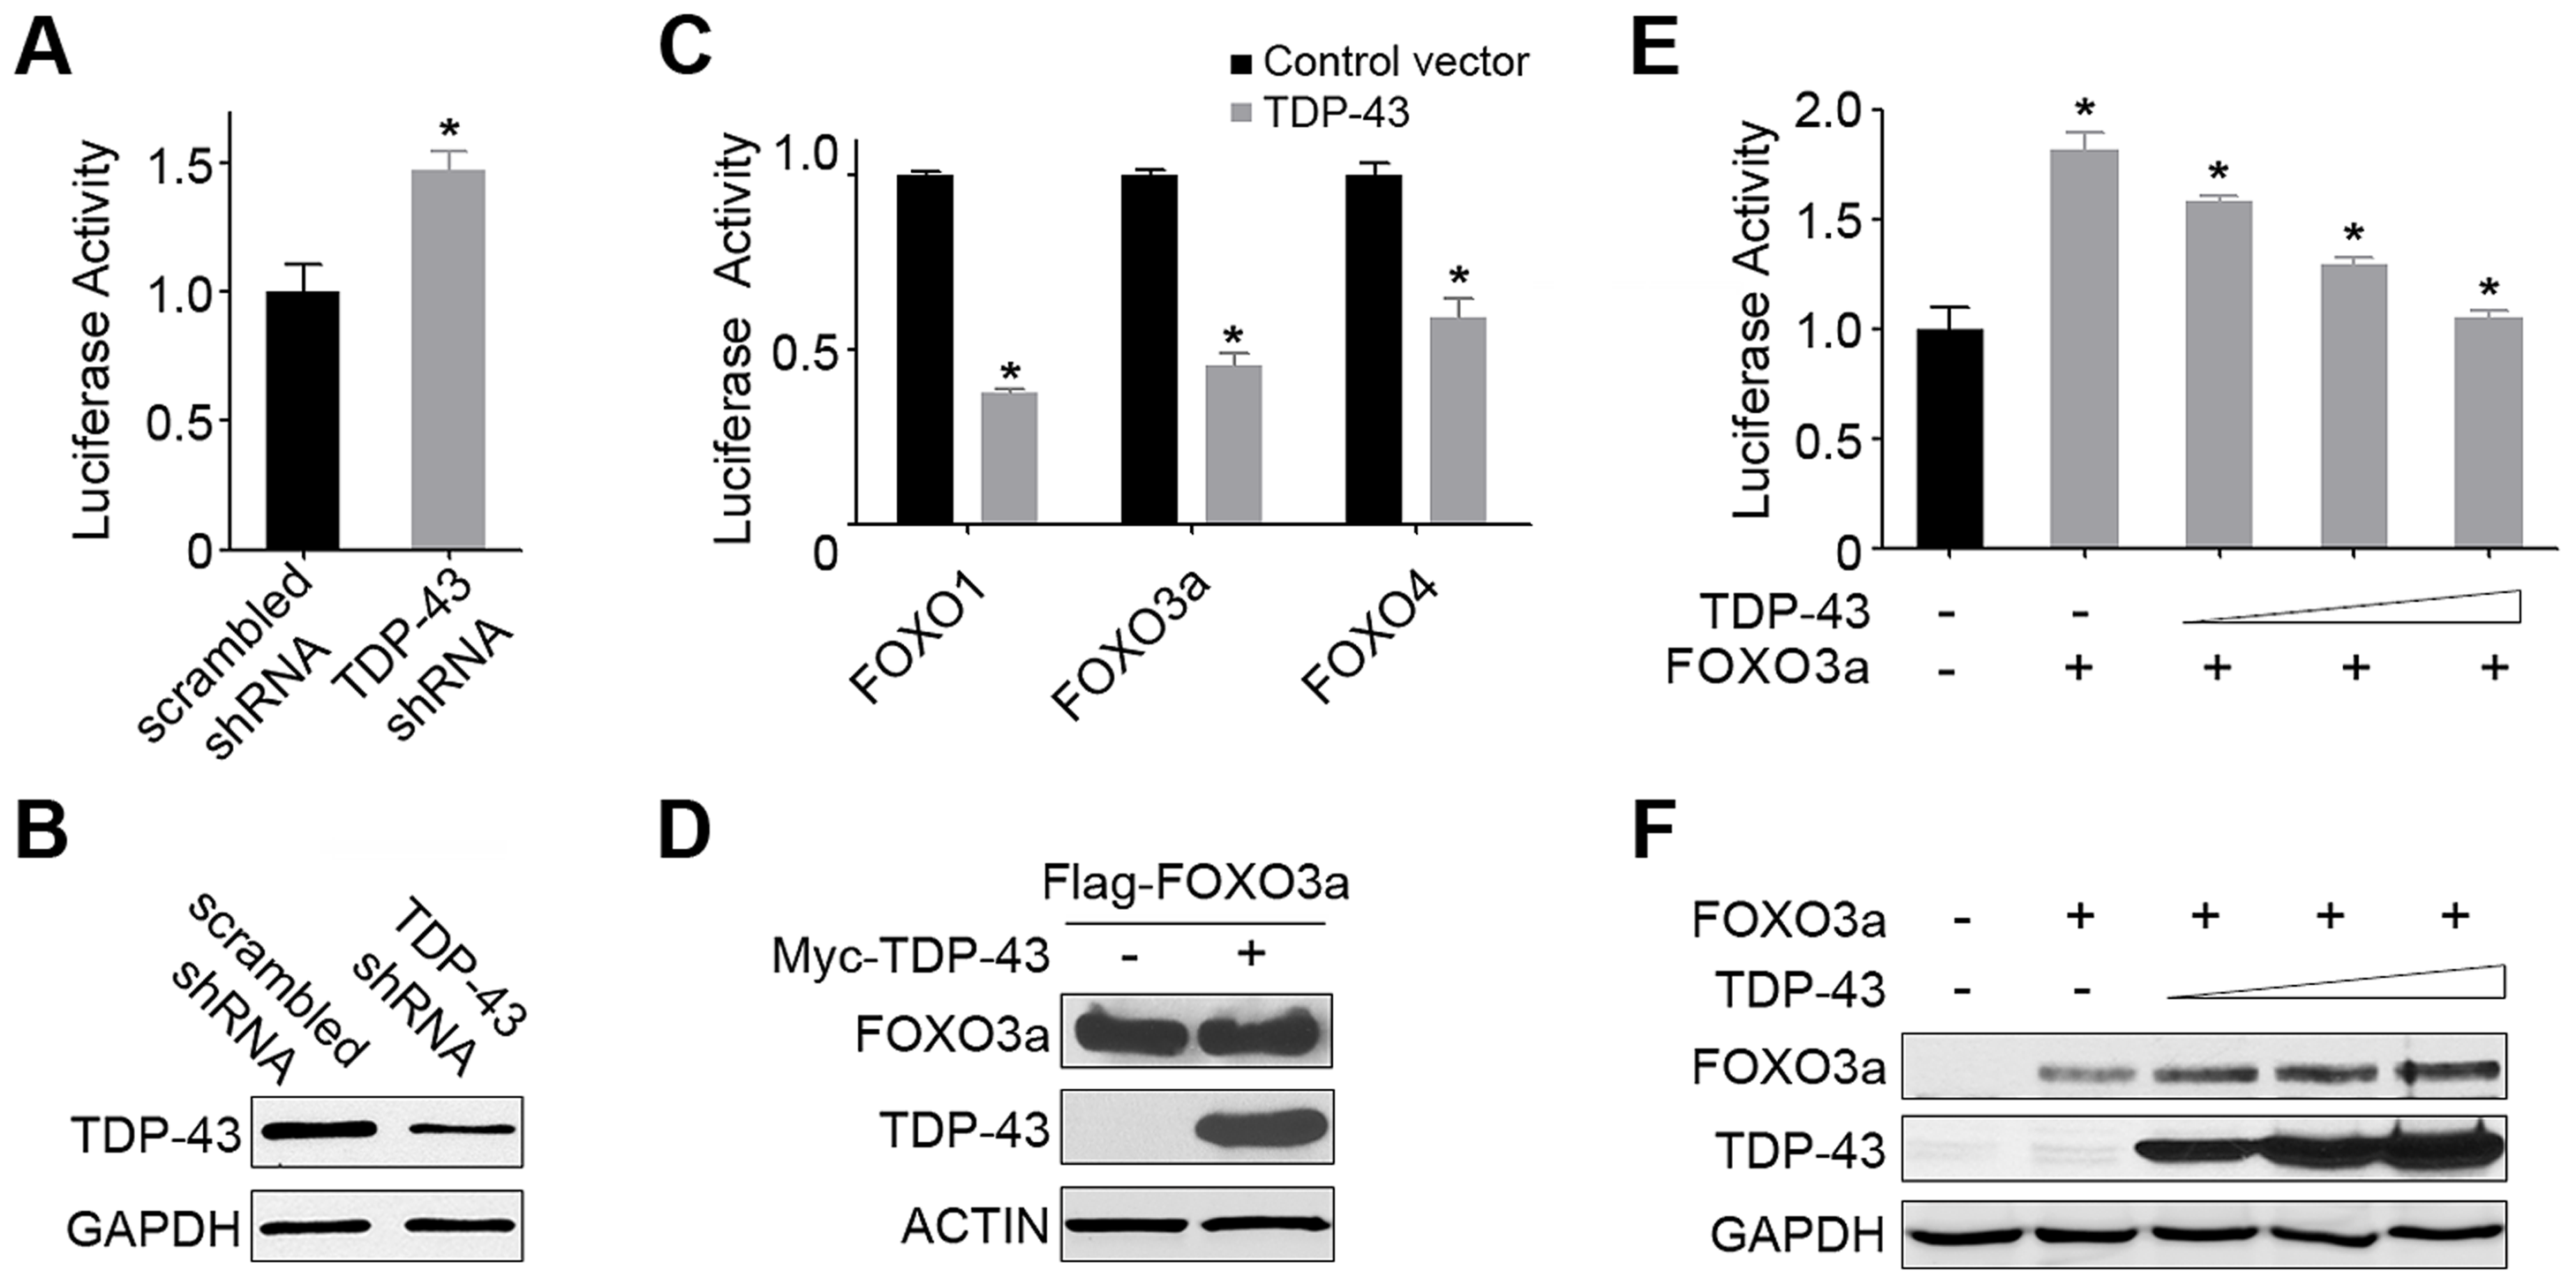 TDP-43 negatively regulates the transcriptional activity of FOXOs in mammalian cells.